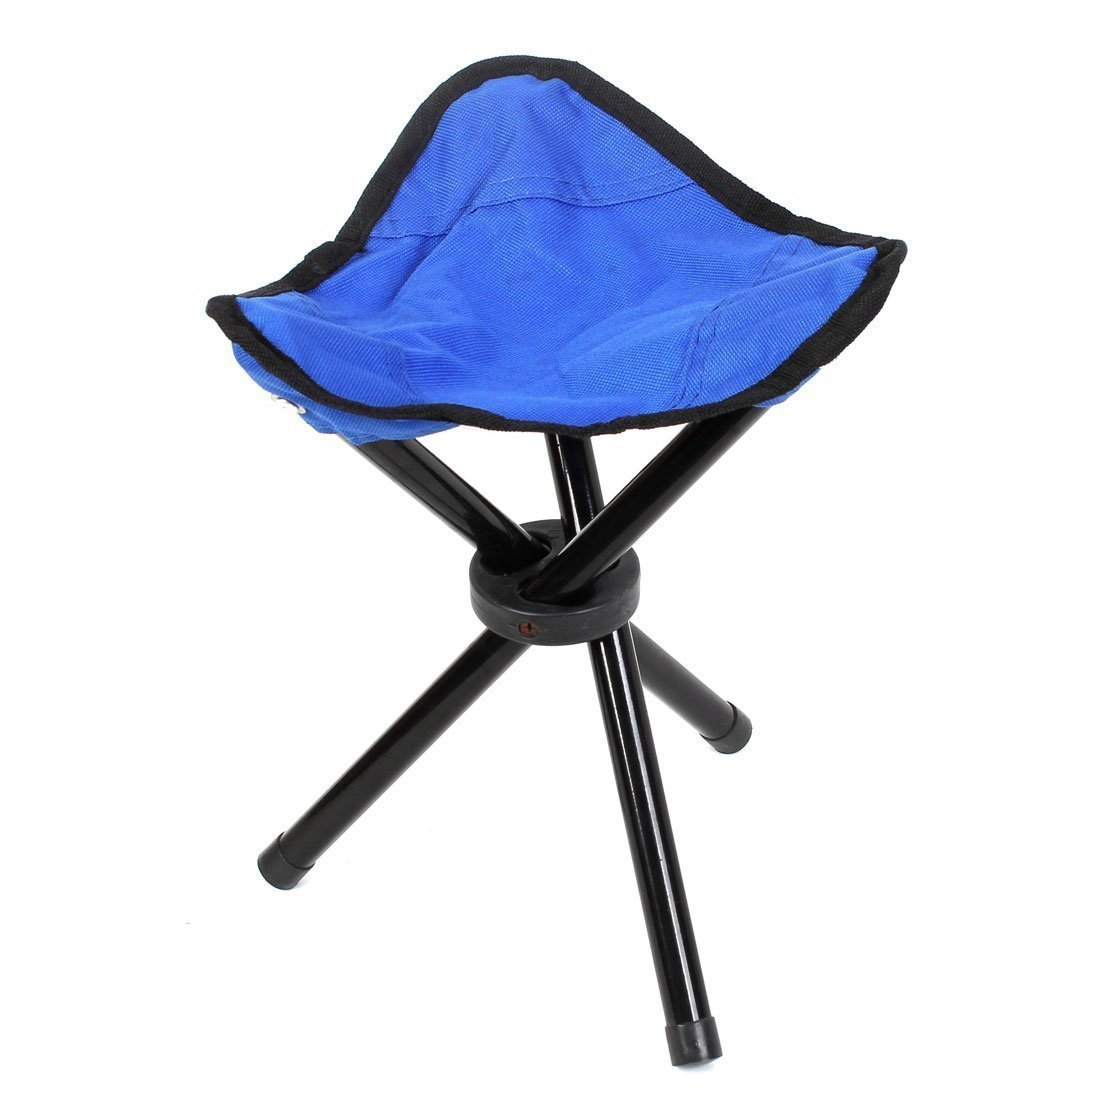 SODIAL Folding Stool andモバイルブルーmulti-activities (キャンプ、ピクニック、釣り、ハイキング) (椅子、三脚、Seat ) B078H5D2HQ